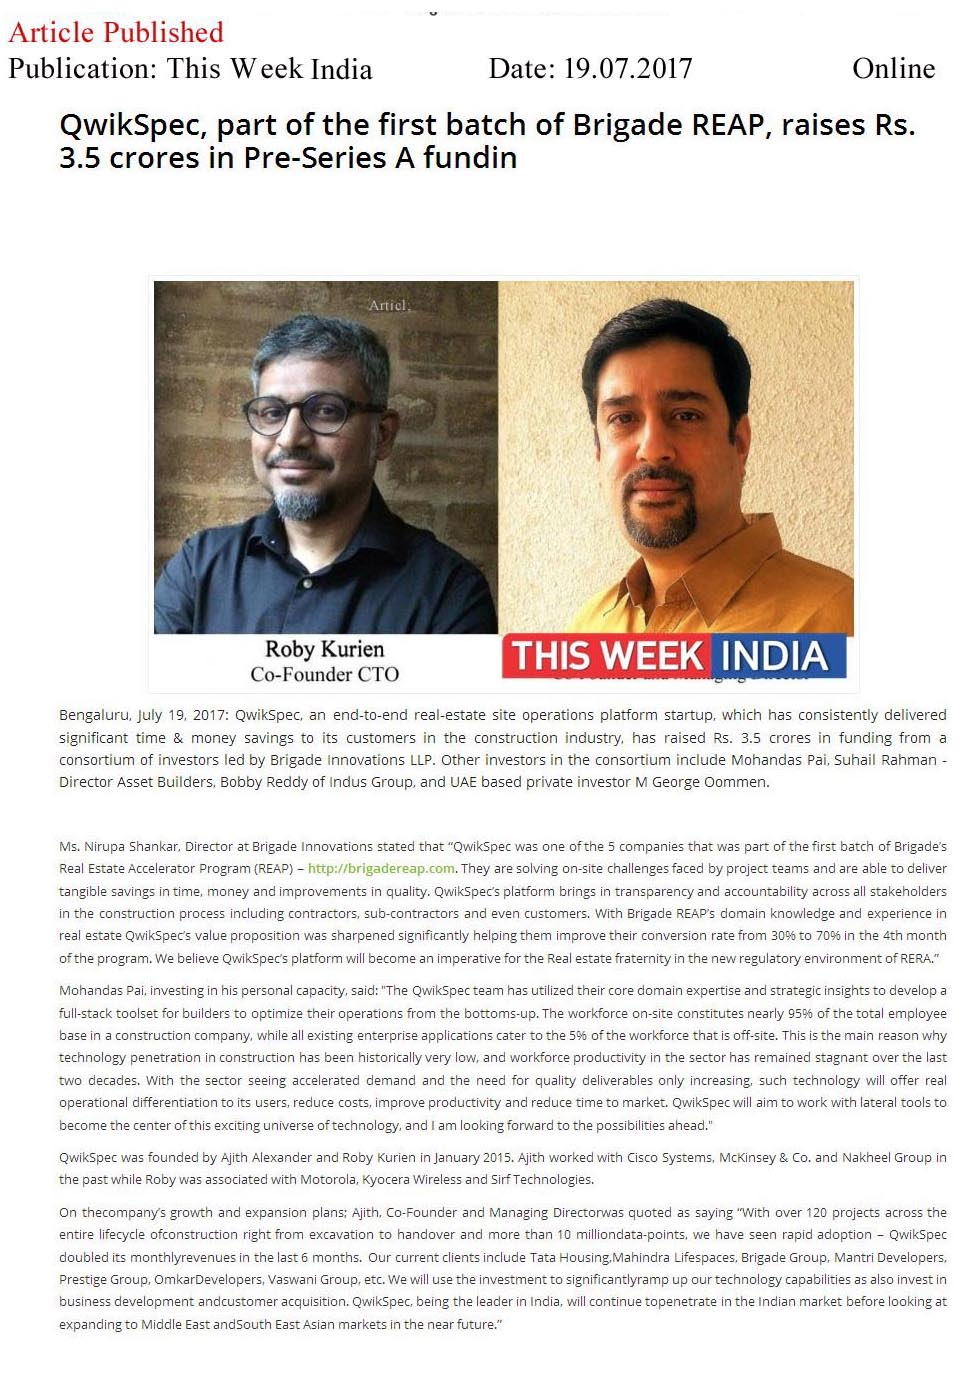 QwikSpec, A Real-Estate Site Operations Platform Startup, Raises Rs.3.5 Crores in Pre-Series A Funding—The Week India-Online